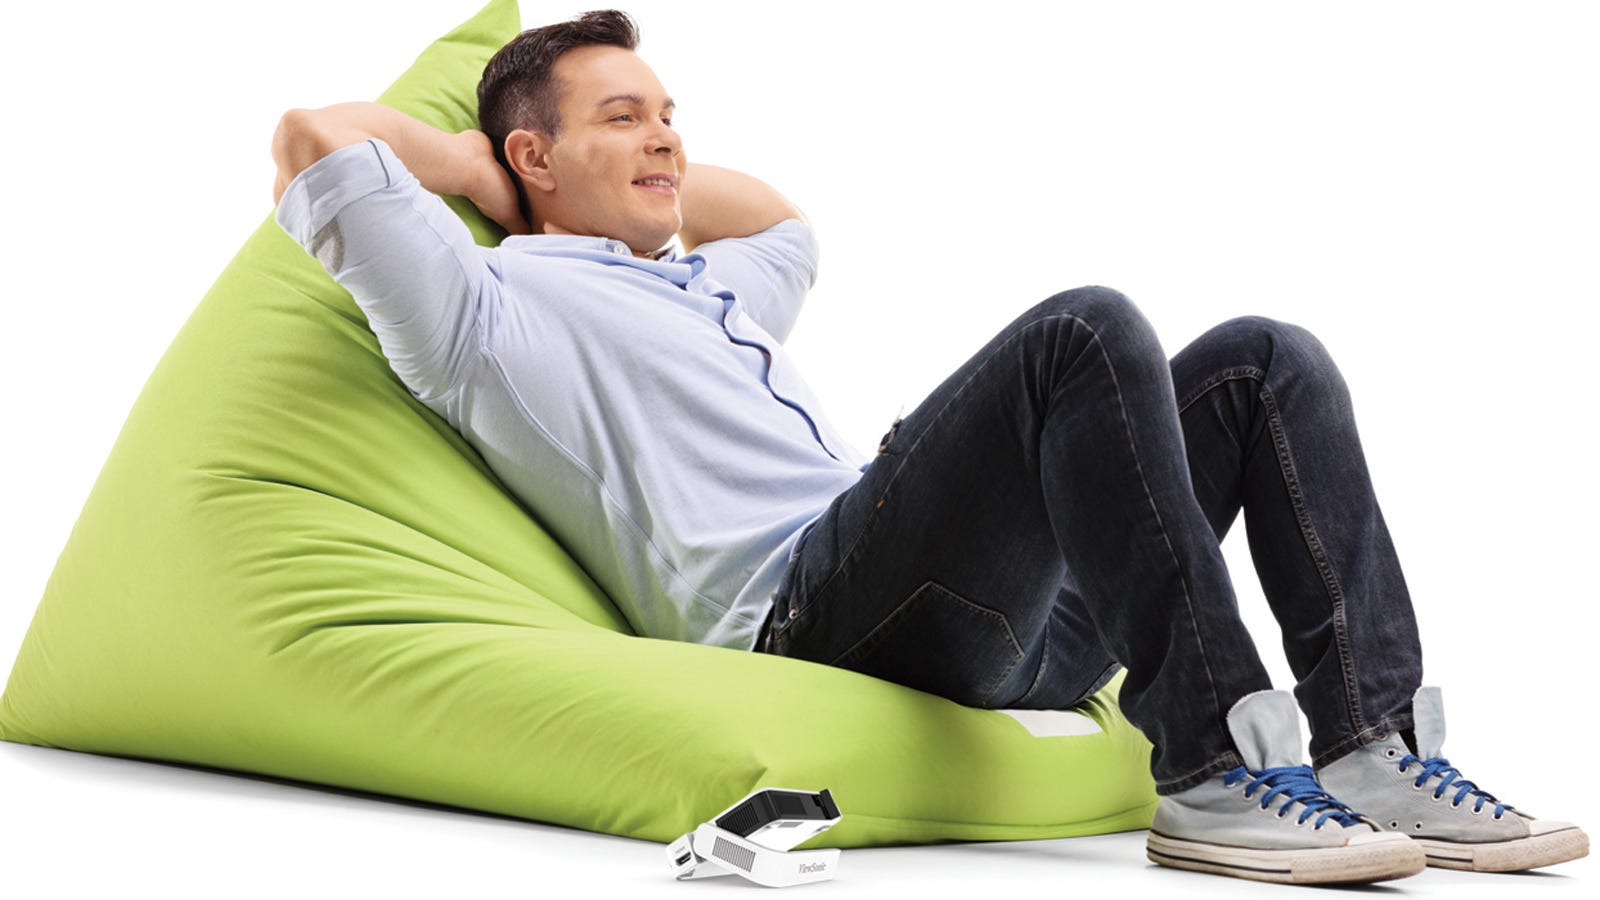 Man lying on pillow ith tiny projector next to hiom on floor